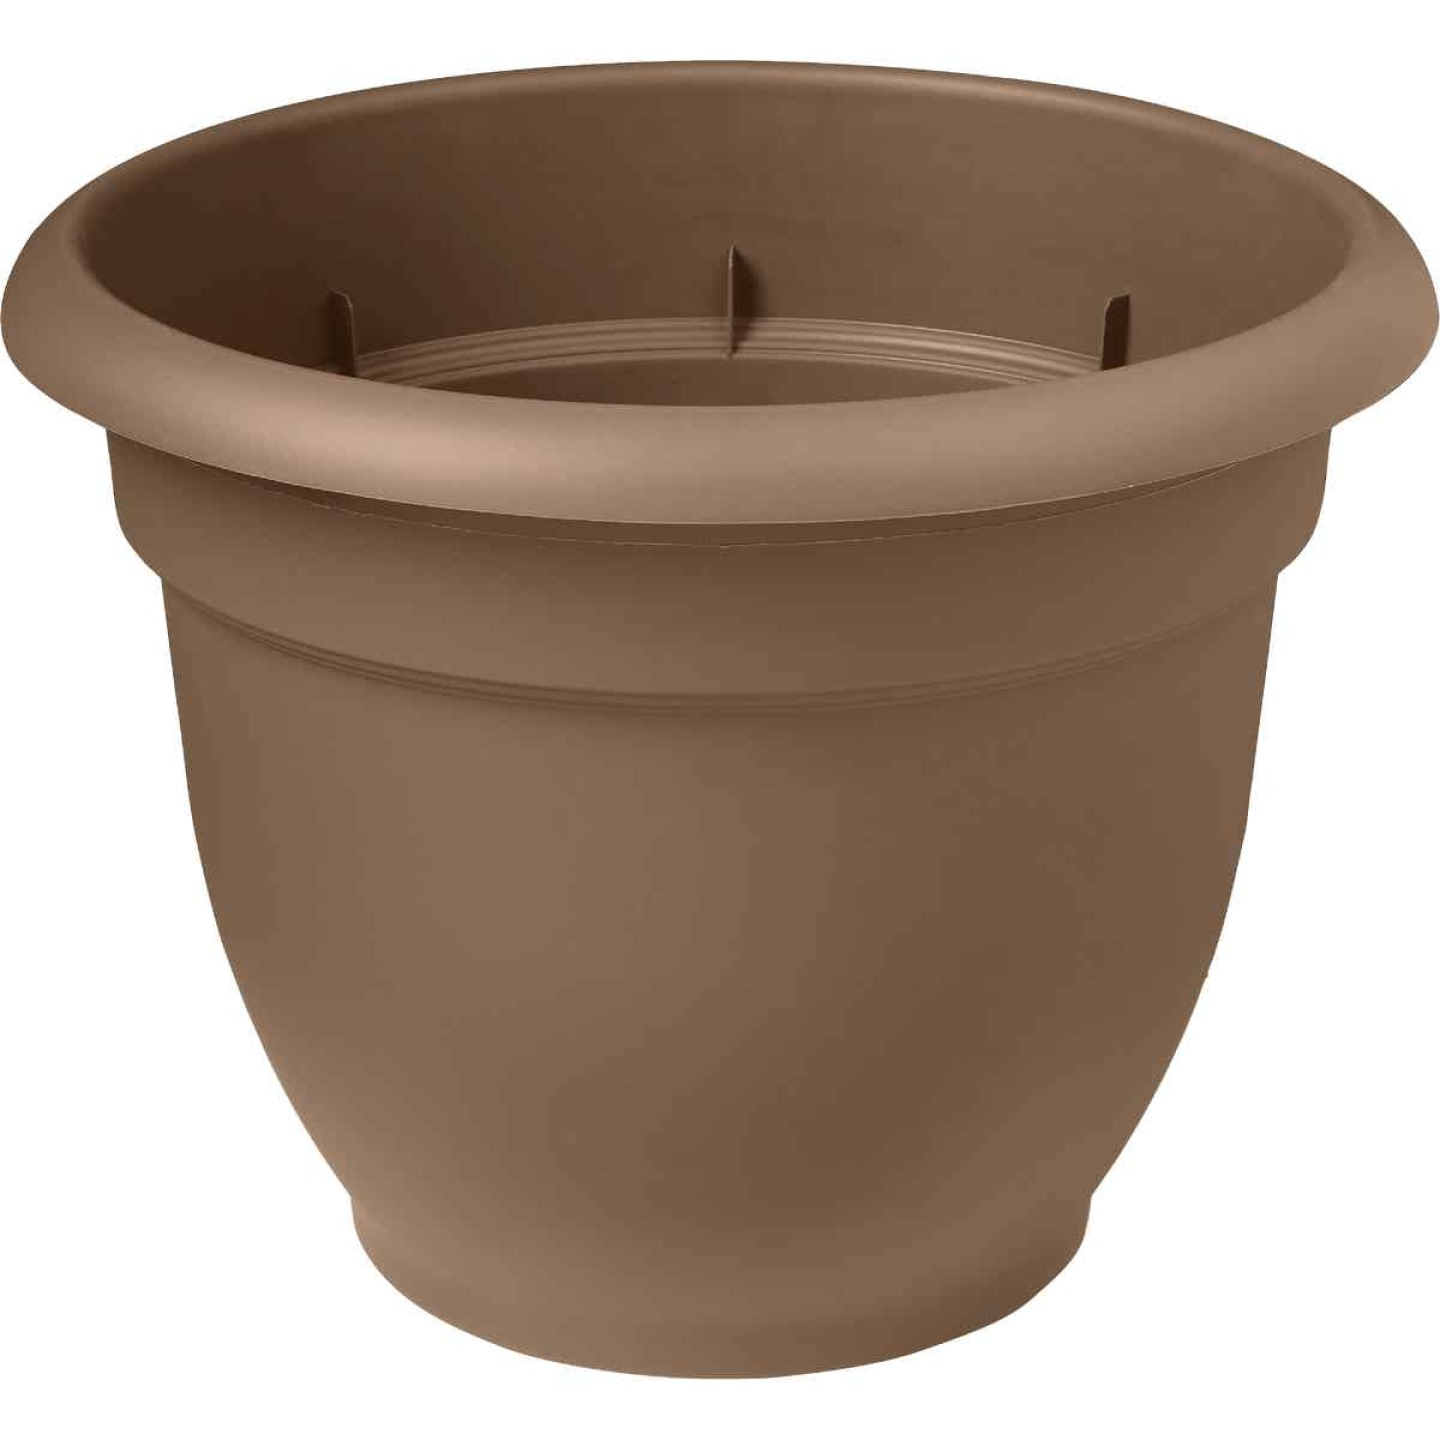 Bloem Ariana 13.75 In. H. x 16 In. Dia. Plastic Self Watering Chocolate Planter Image 1